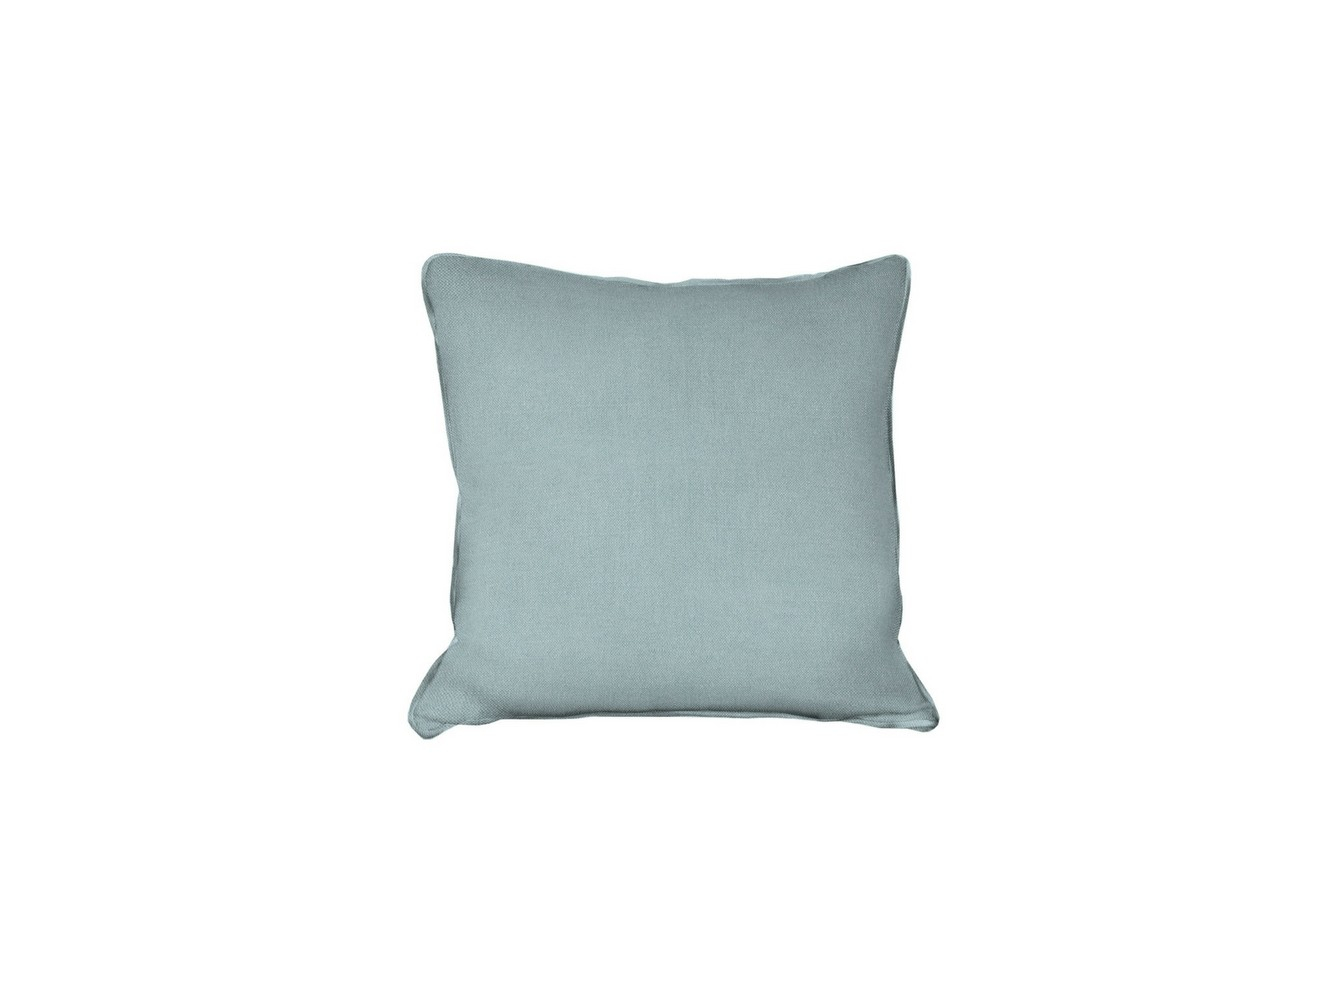 Extra Scatter Cushions - Fabric Gulls Egg